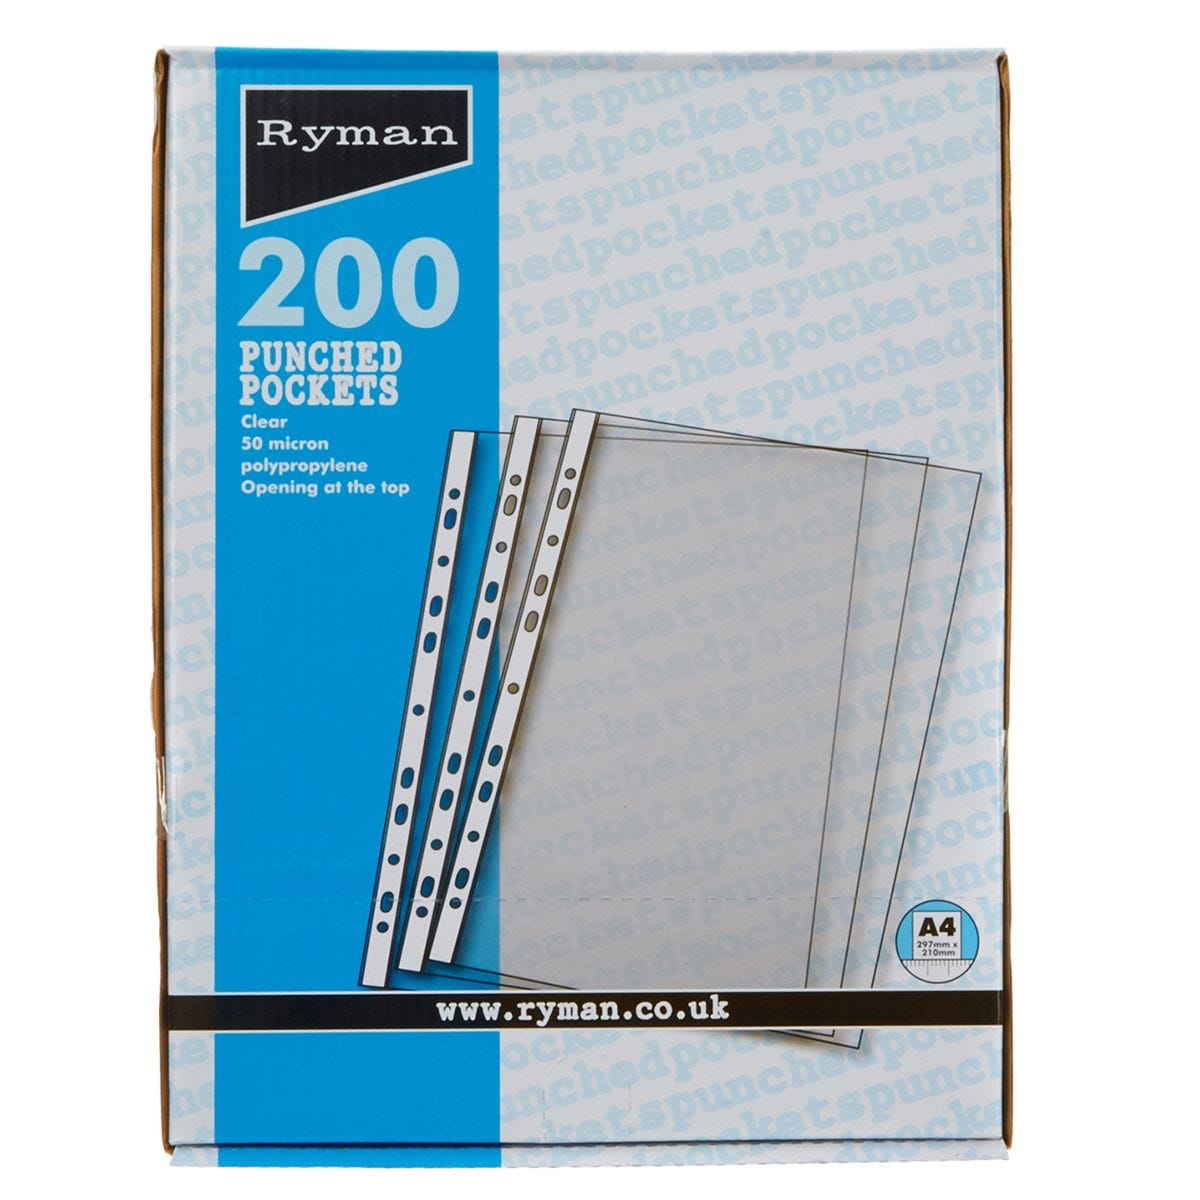 Ryman Punched Pockets A4 50 Micron - Box of 200